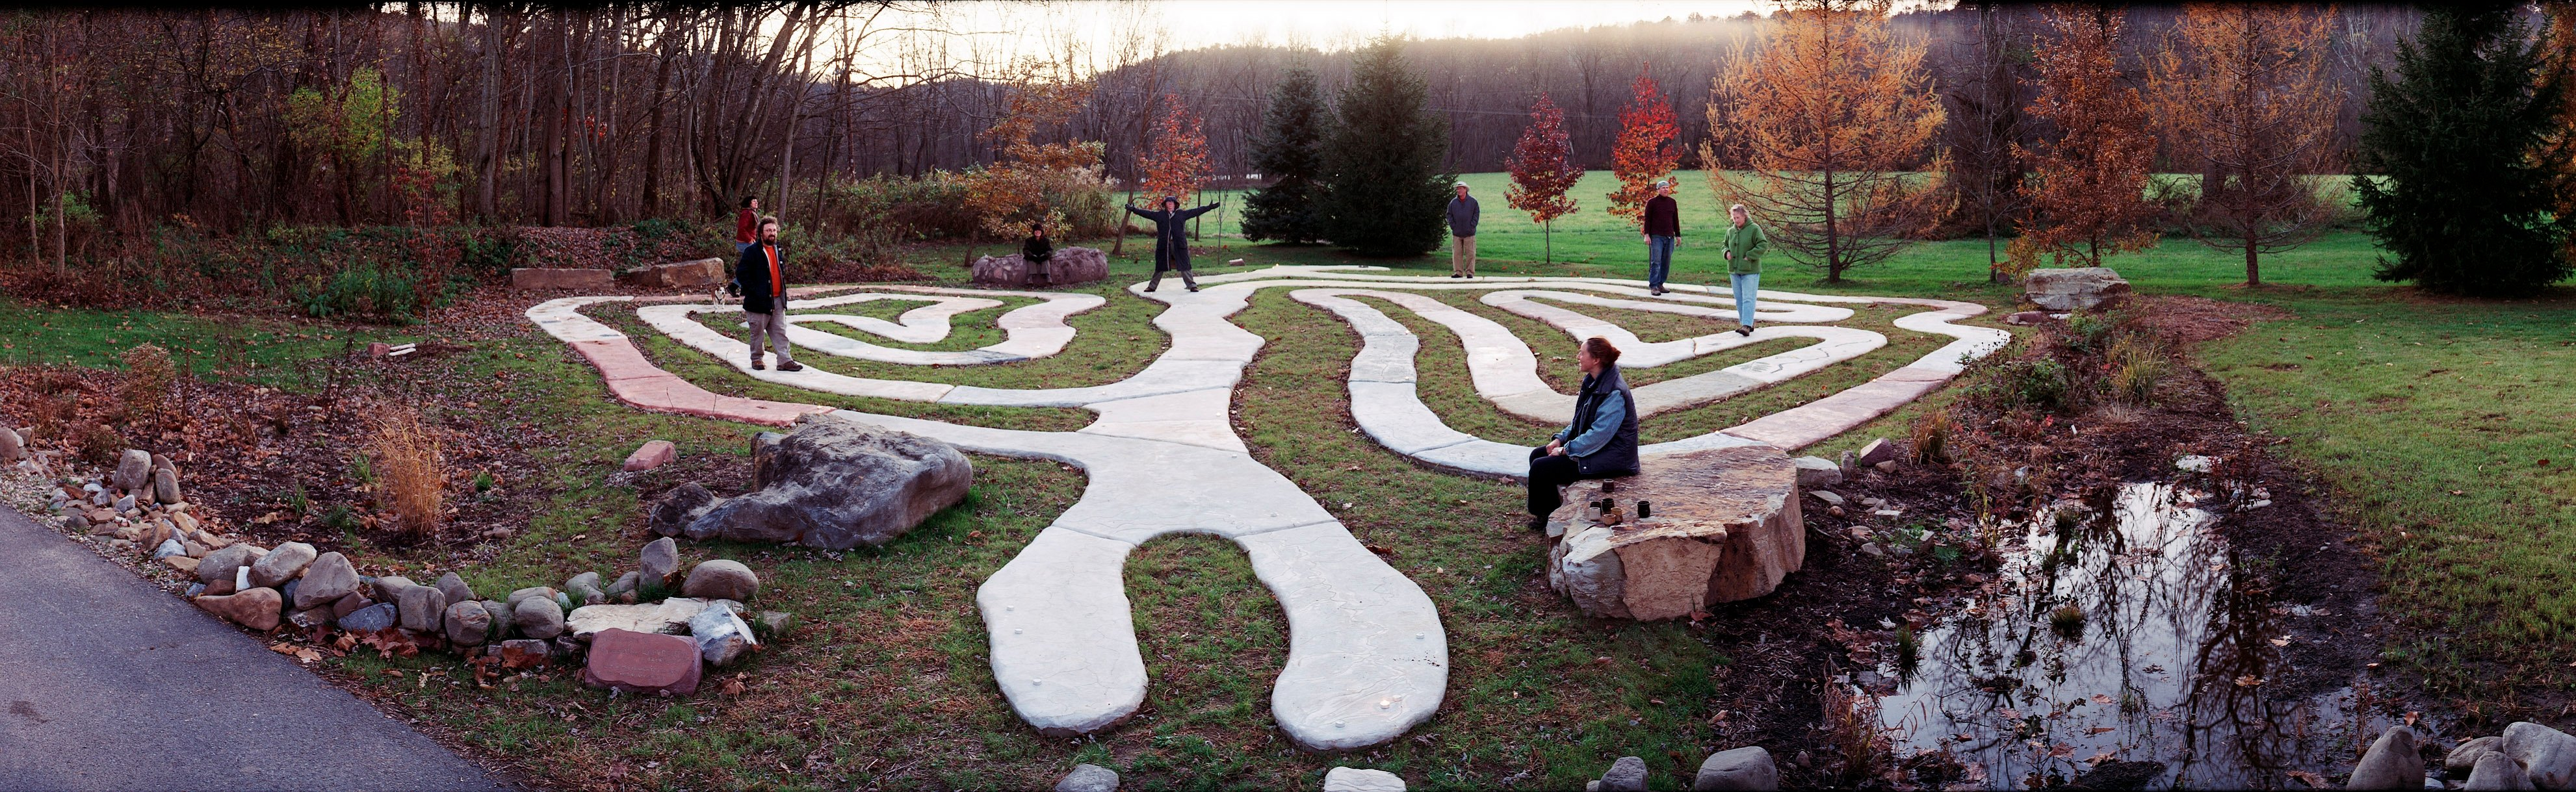 RiverWise Labyrinth Park